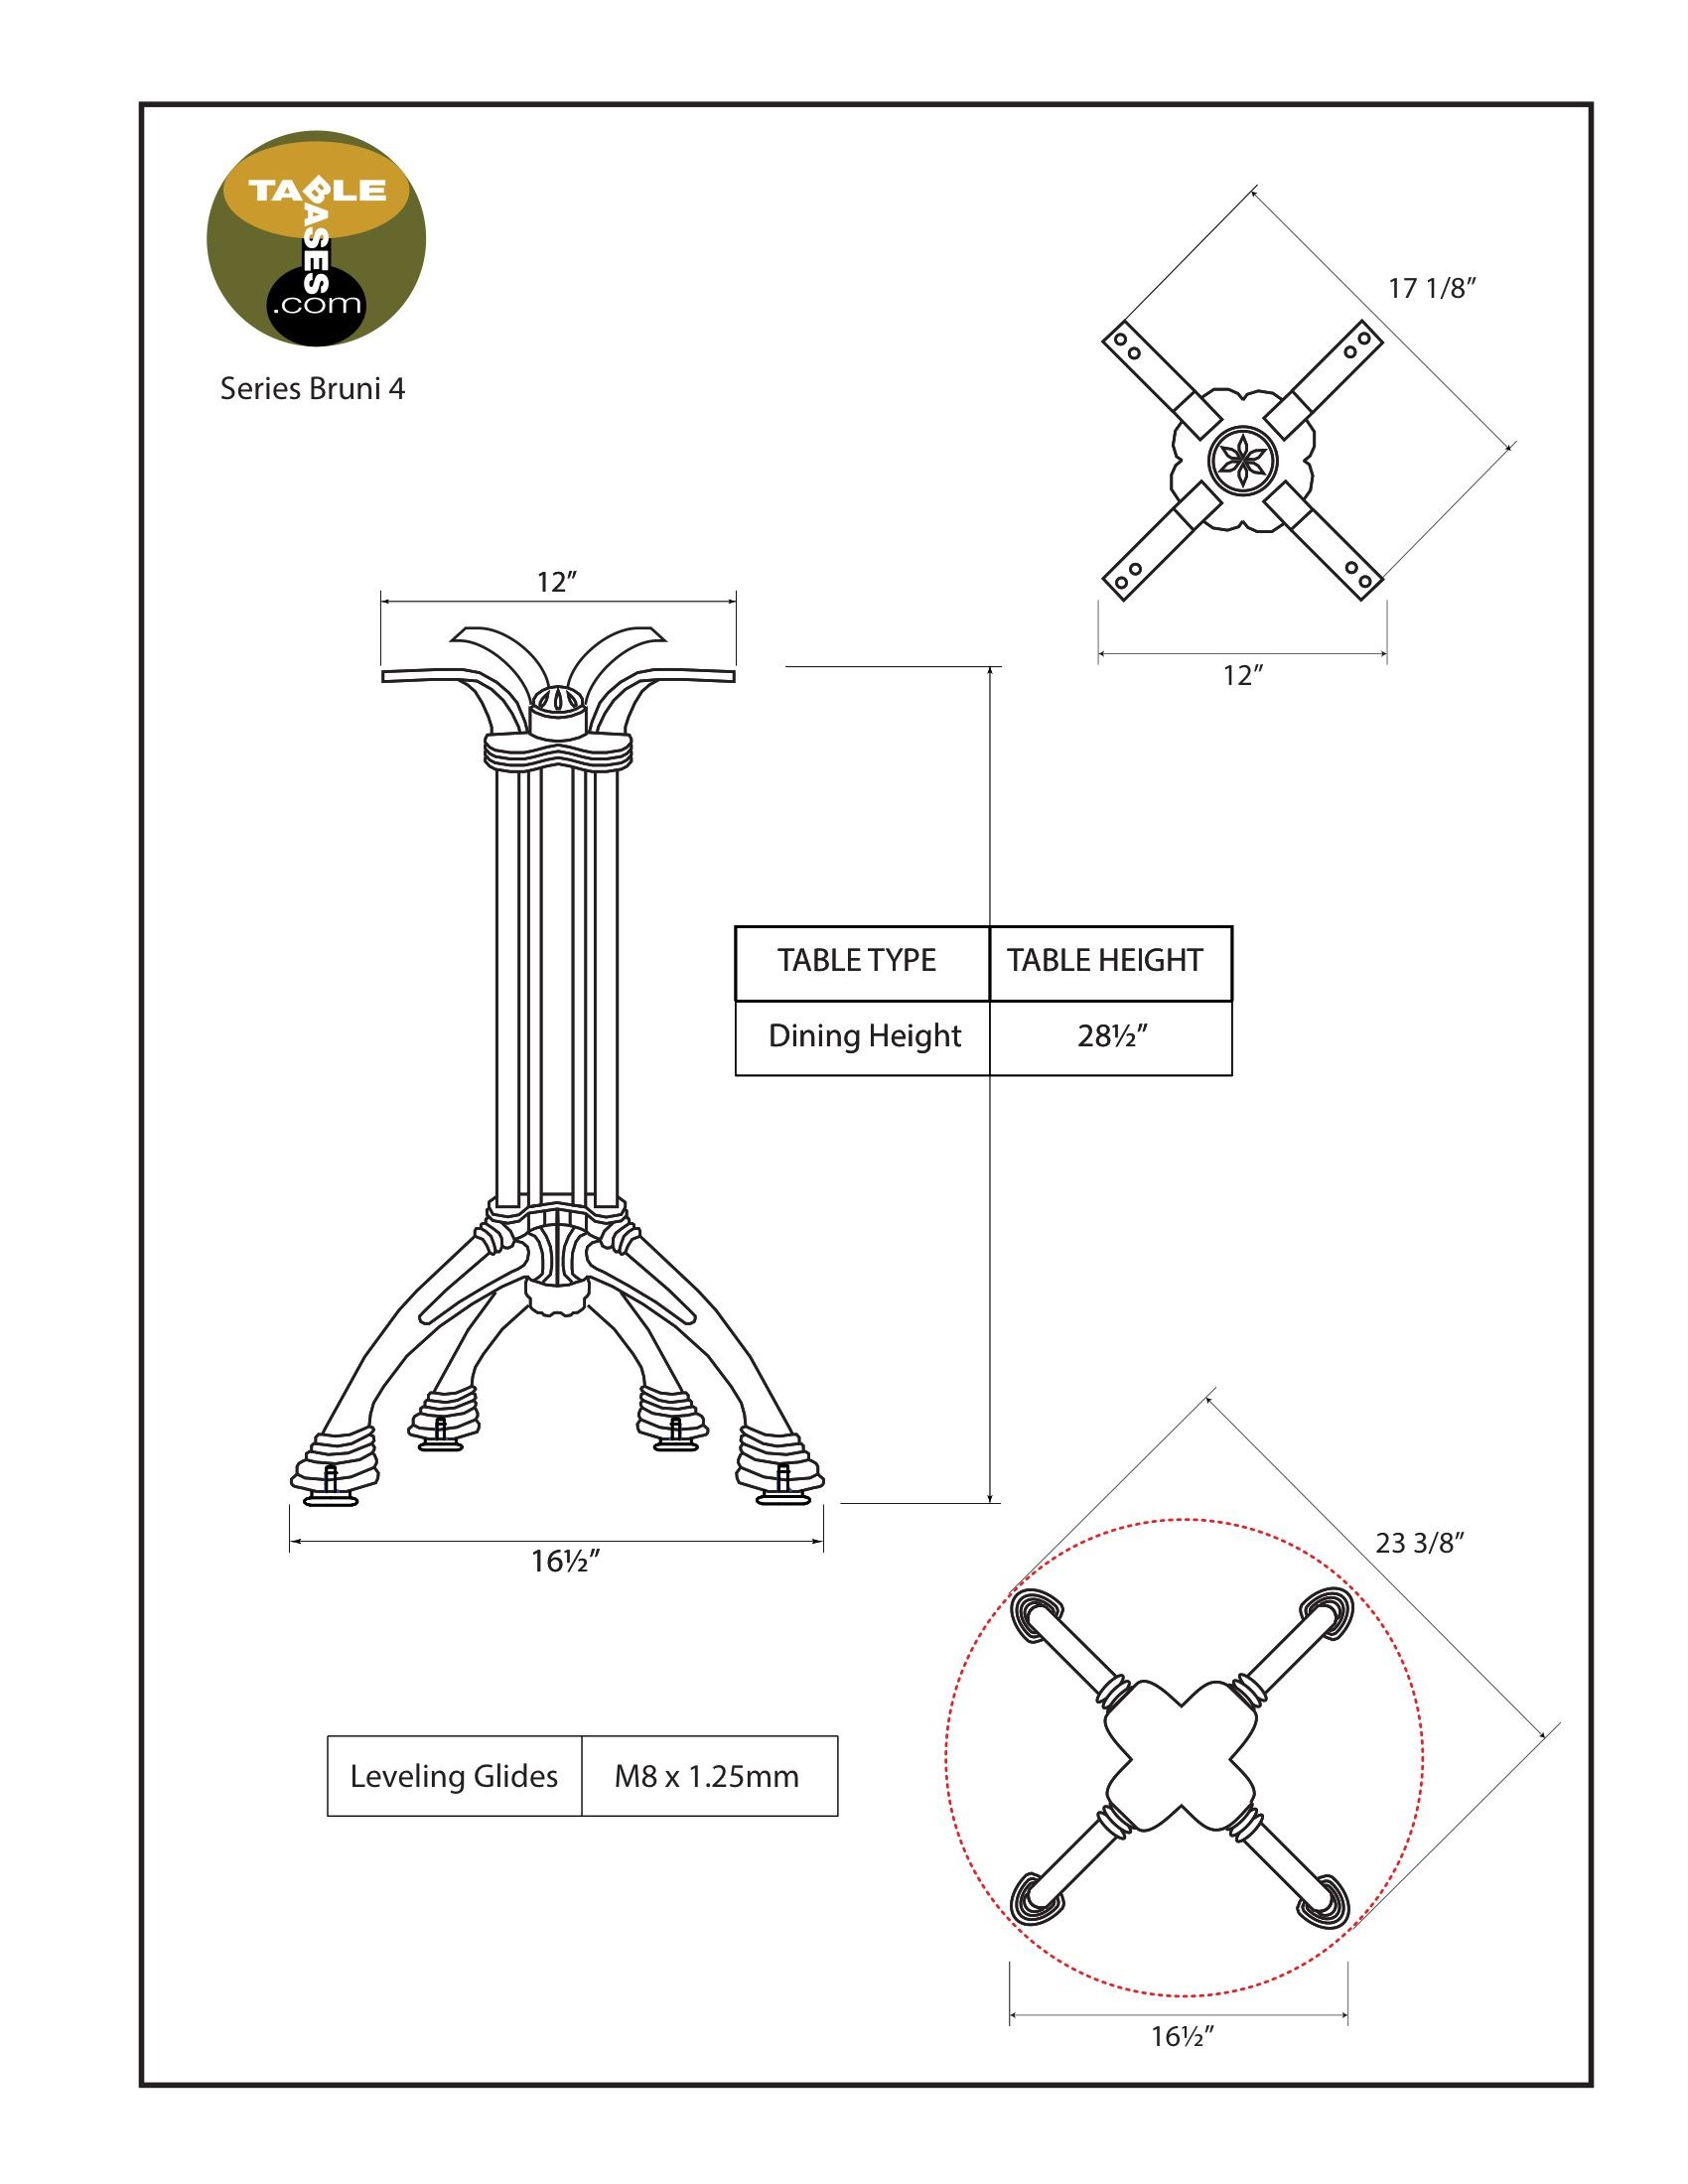 Bruni 4 Table Base Specifications